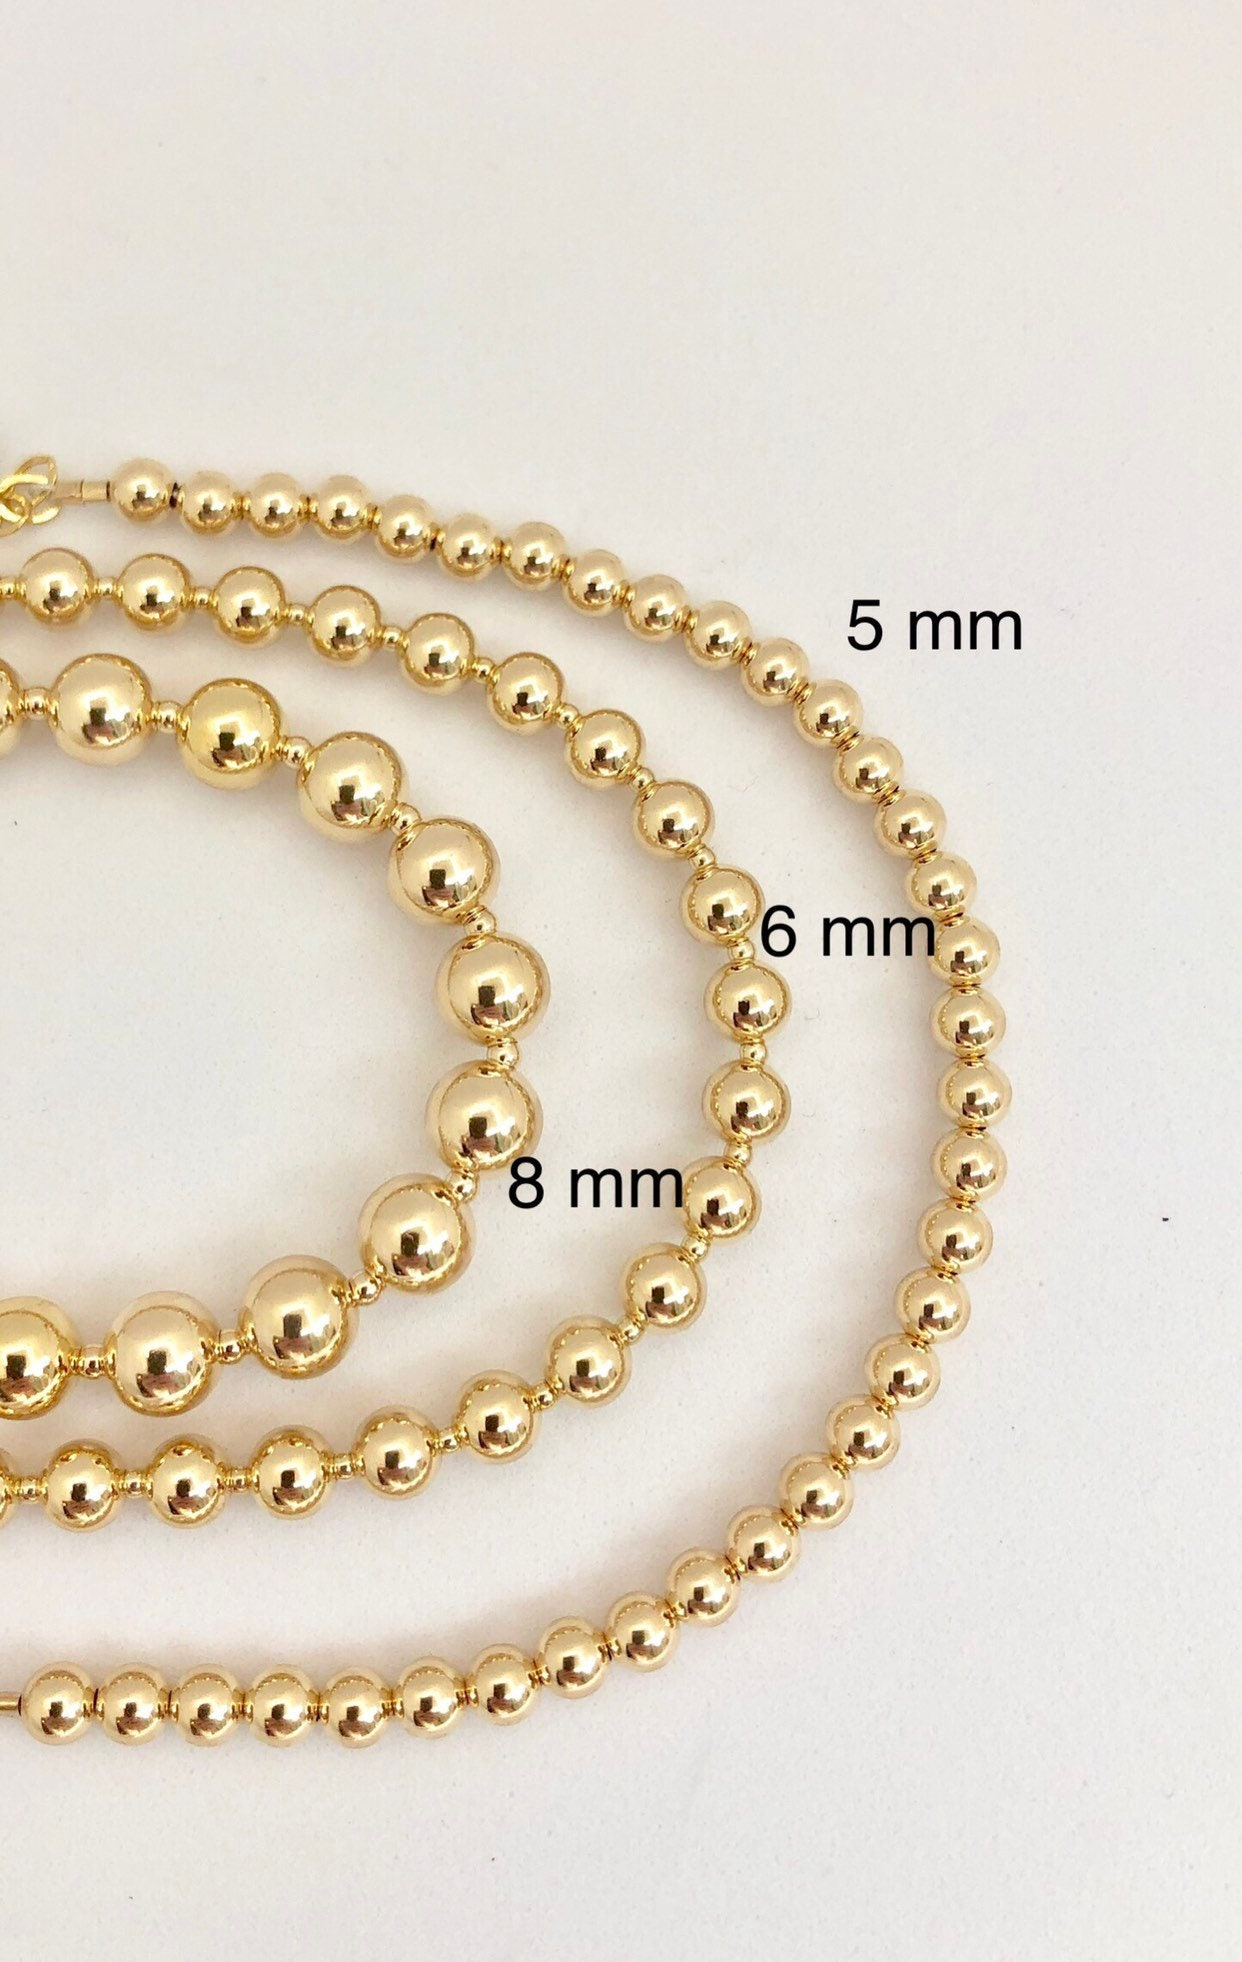 14 k GOLD FILLED  4 MM Pkg. Of 8 CRIMP COVERS